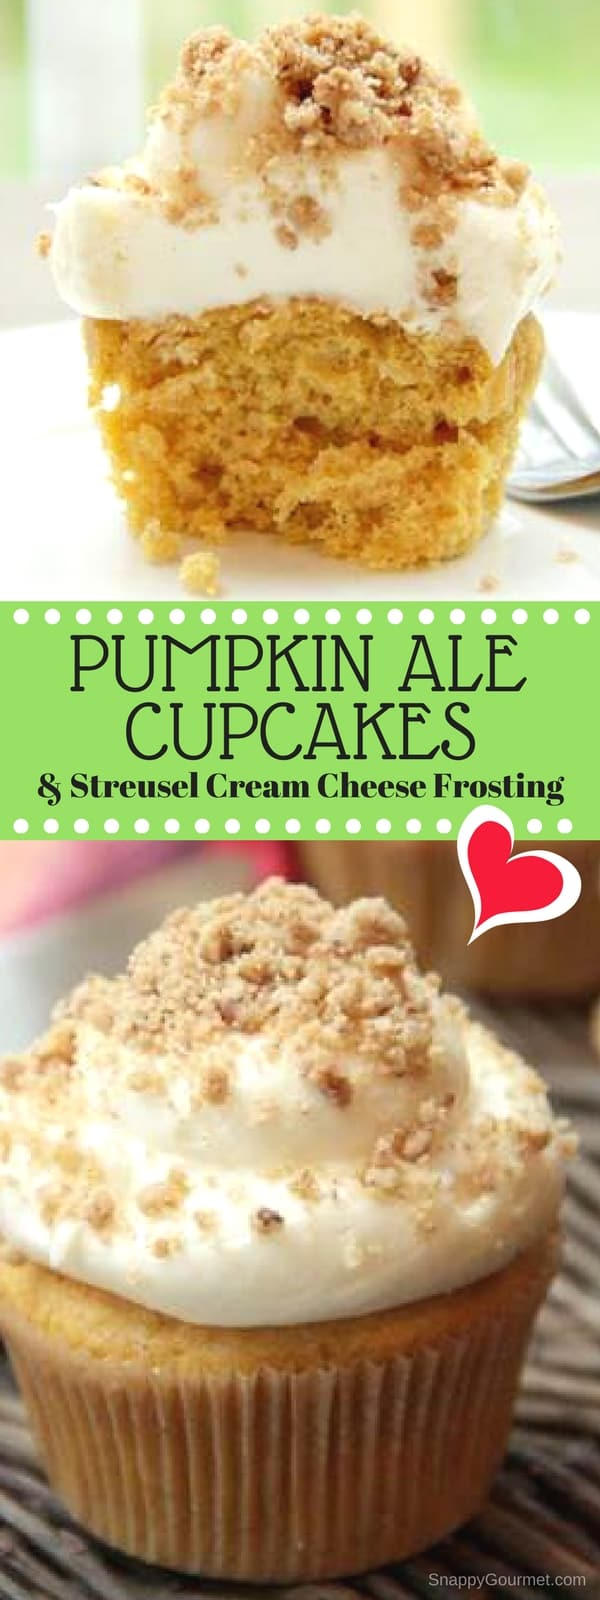 Pumpkin Ale Cupcakes with Streusel Cream Cheese Frosting and Streusel Topping - an easy homemade cupcake recipe with a little help from a cake mix, canned pumpkin, and beer. #pumpkin #cupcake #beer #SnappyGourmet #Homemade #Fall #Thanksgiving #Dessert #Recipe